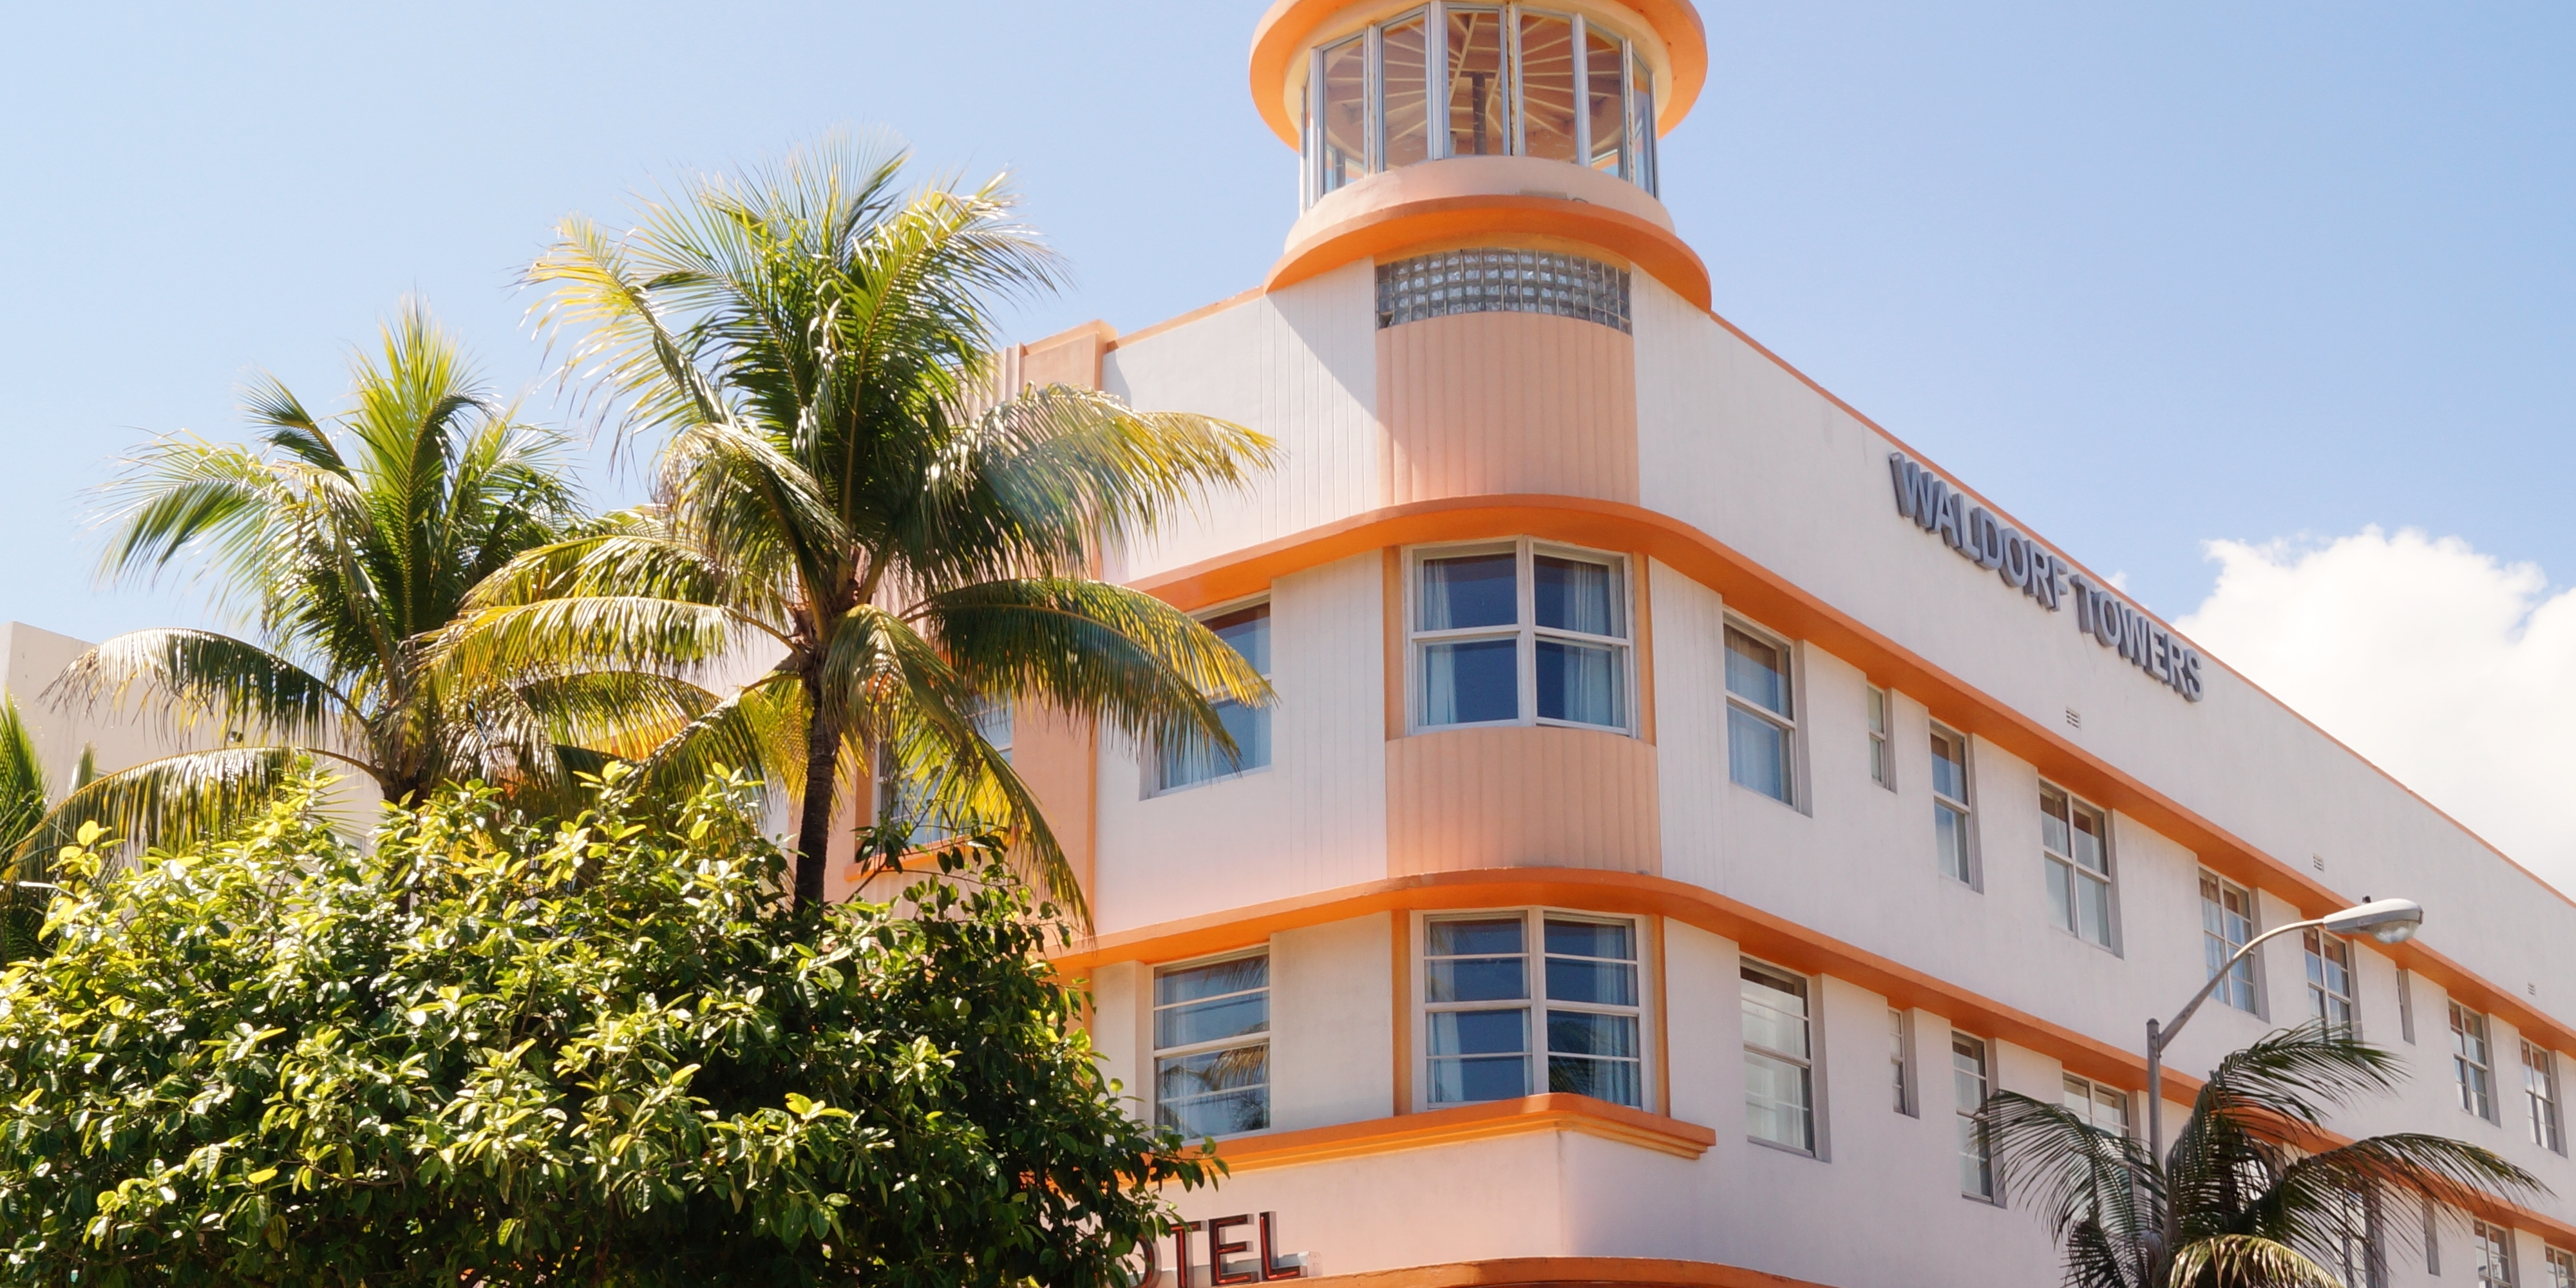 Albert Anis, Waldorf Towers, Miami Beach, Florida, 1937. Photo: Mickey Luigi Logitmark.